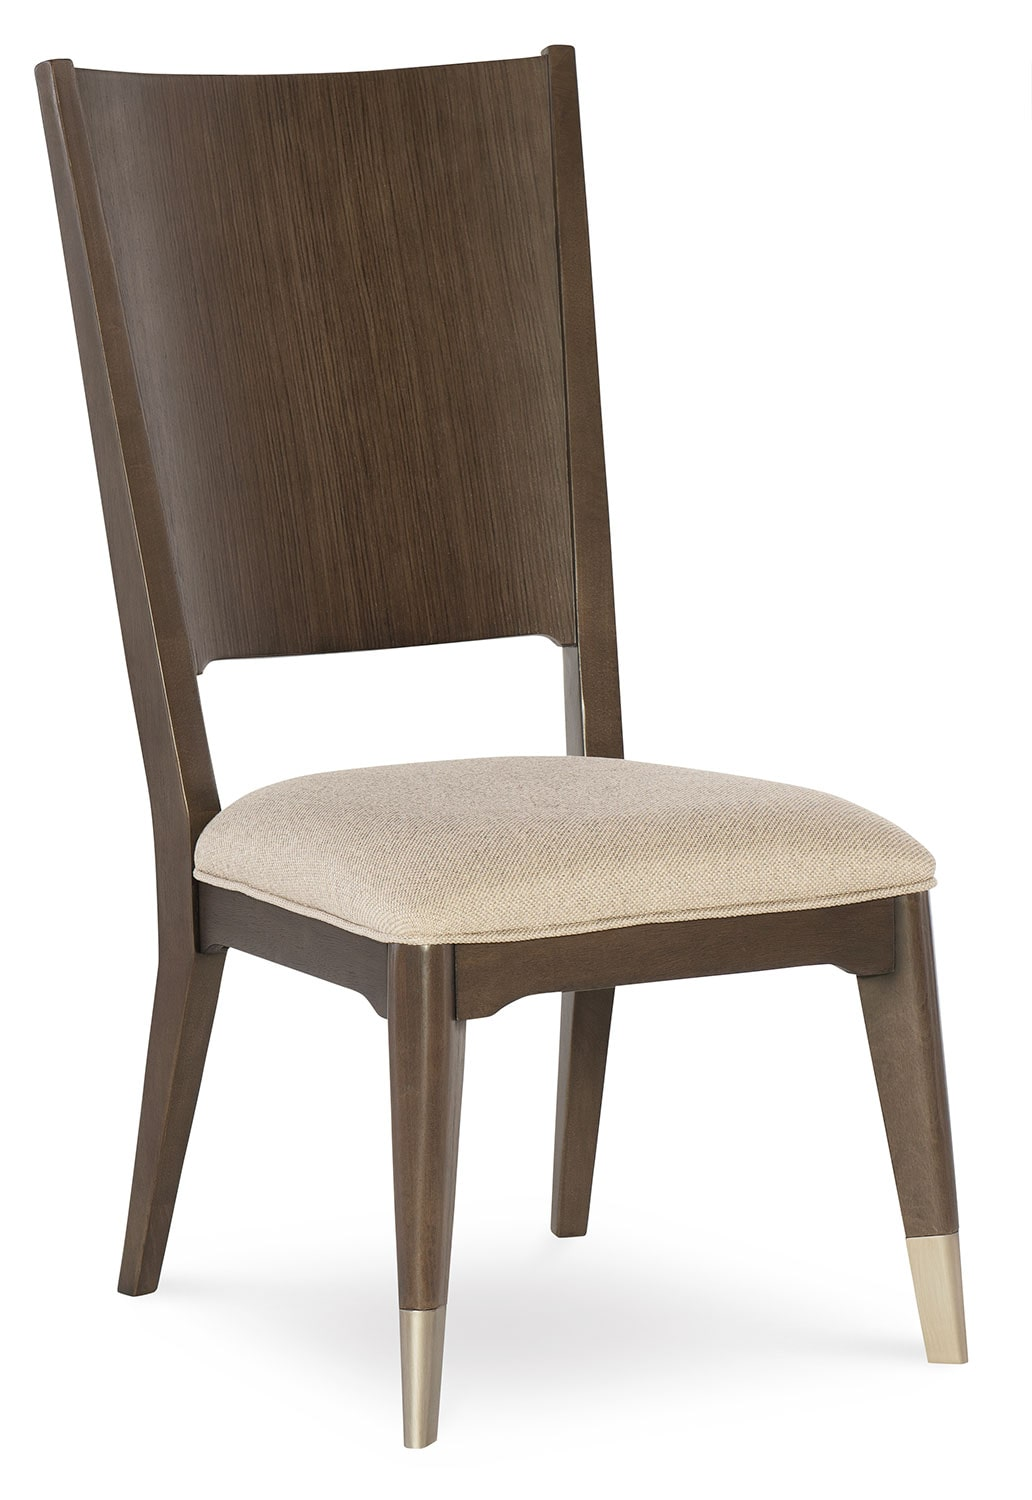 Dining Room Furniture - Rachael Ray Soho Side Chair - Ash Brown